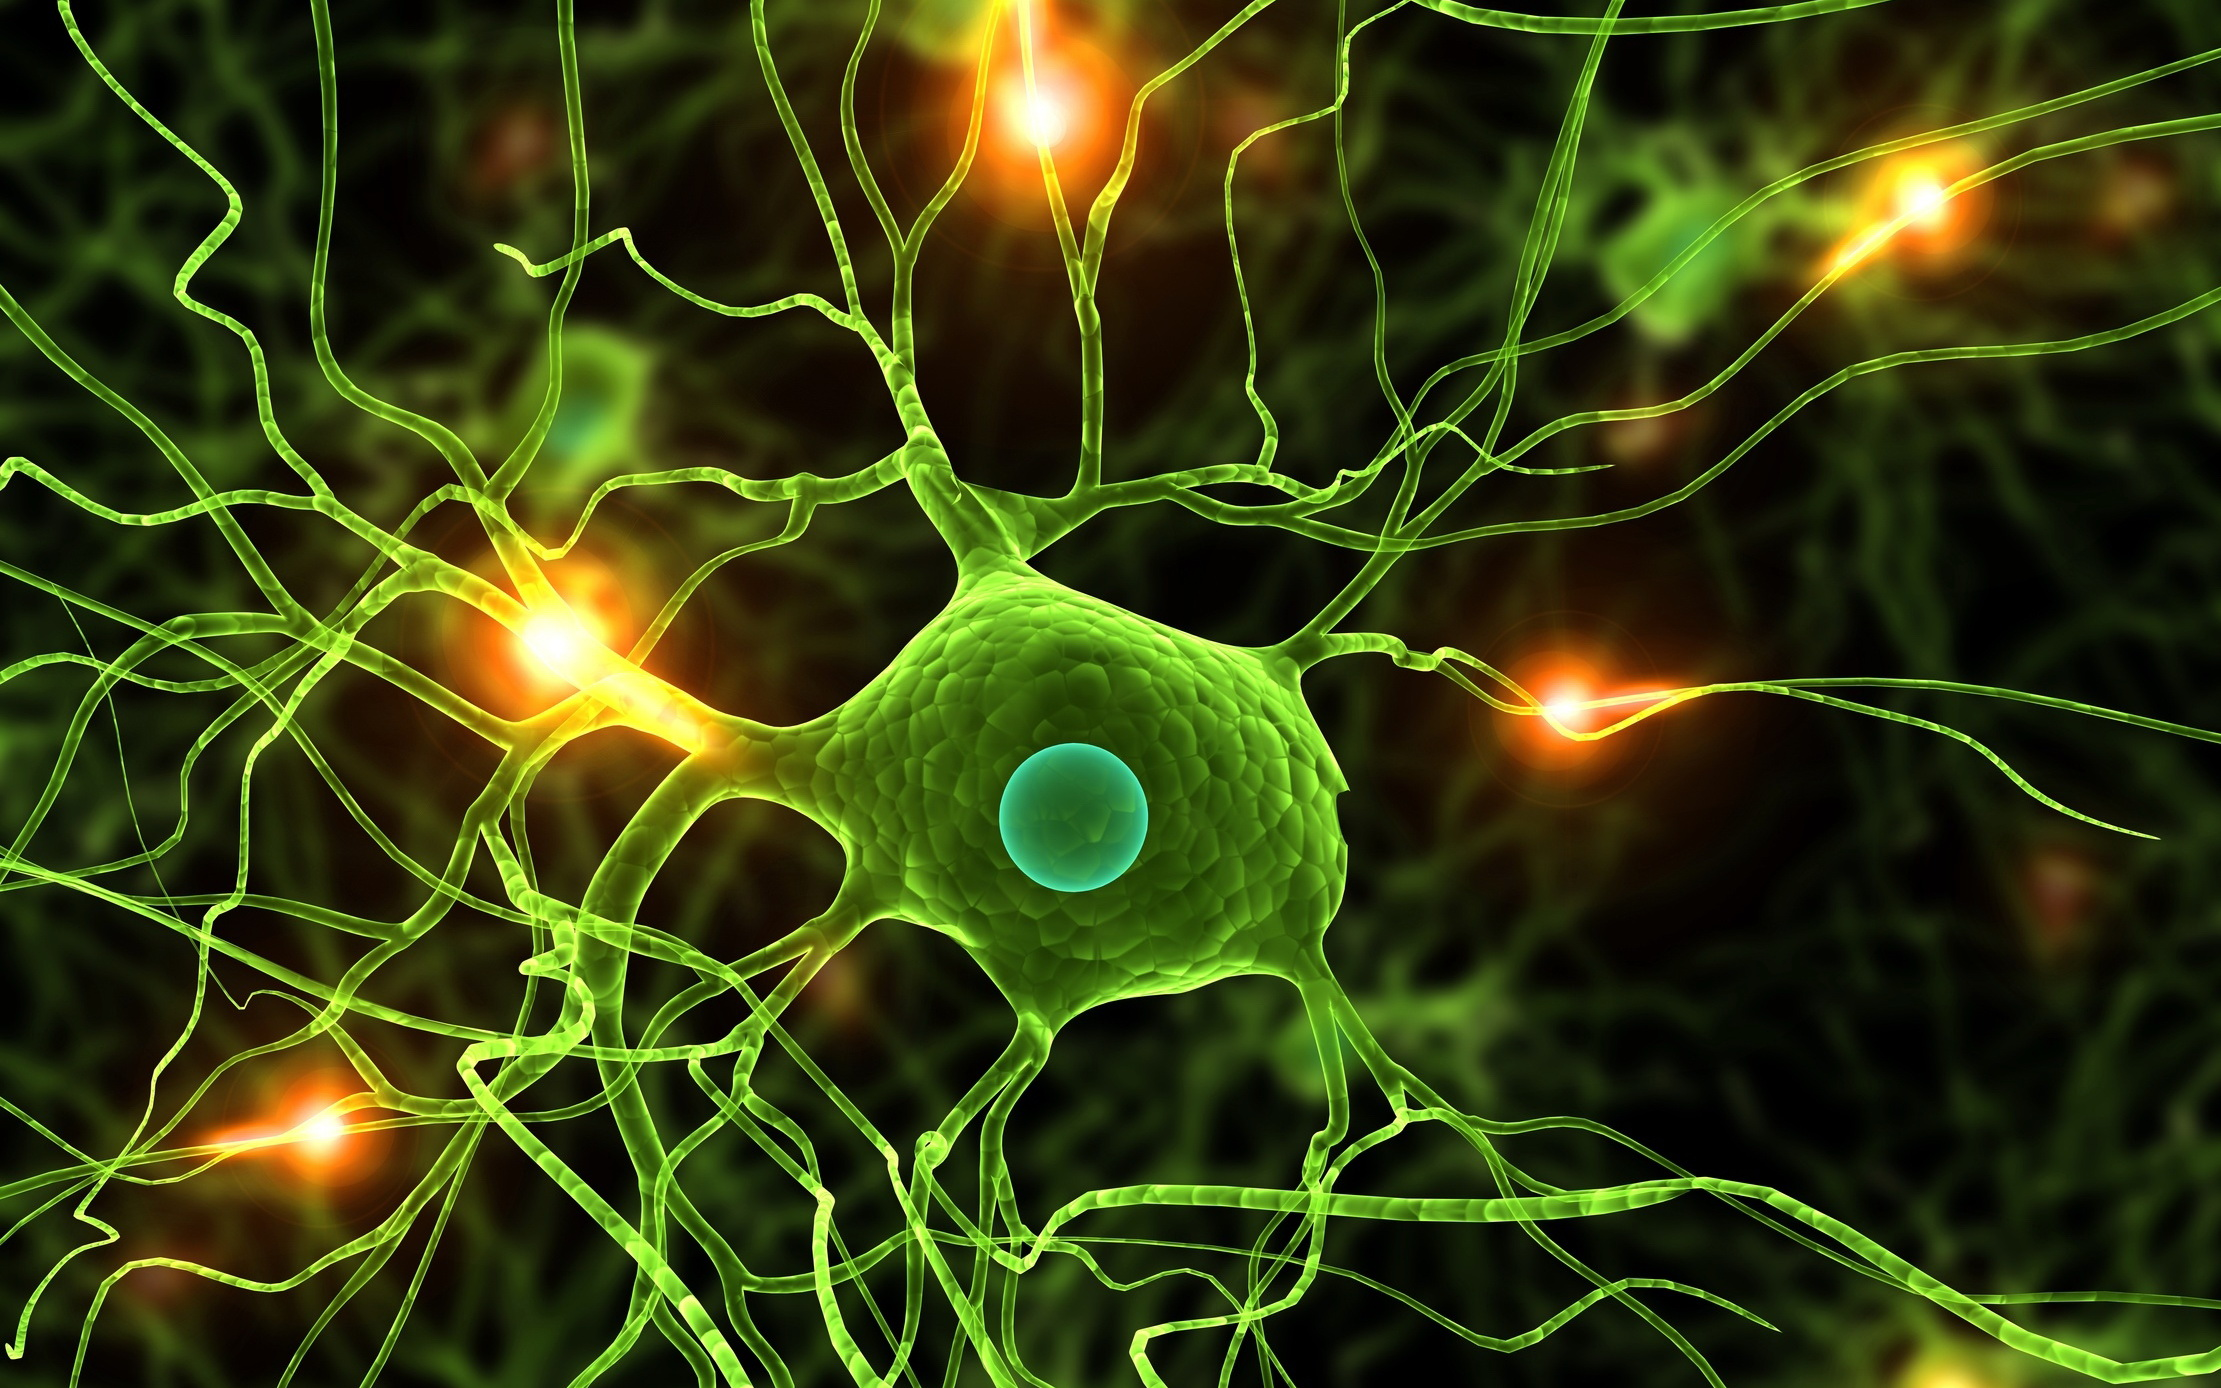 research on neuro transmitters Neuro transmitters uploaded by nitisha much further research in the pharmaceutical industry to discover new inhibitors of monoamine uptake the debate as to whether inhibition of noradrenaline or serotonin was the most important in conferring antidepressant efficacy has swung one way and the.